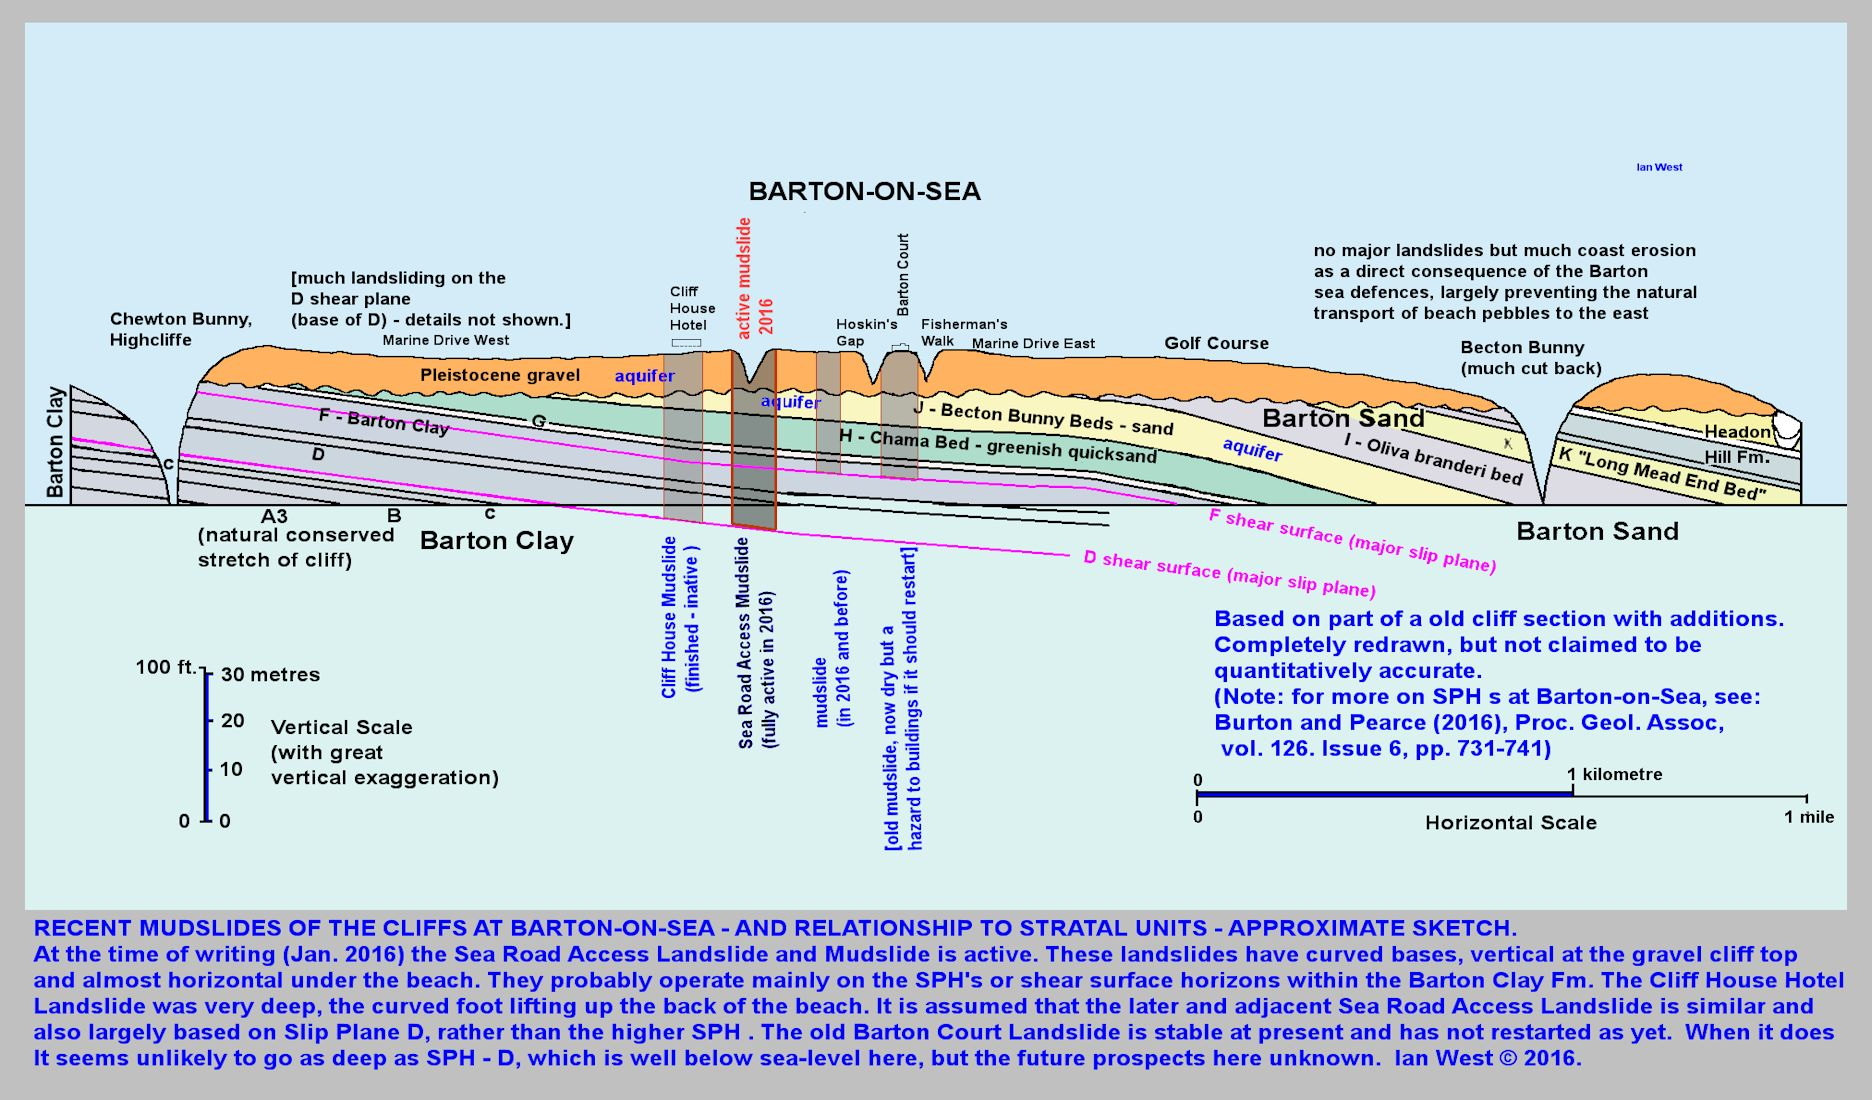 A sketch diagram of mudslide locations and hypothetical depths at central Barton-on-Sea cliffs, as at 1st February 2016